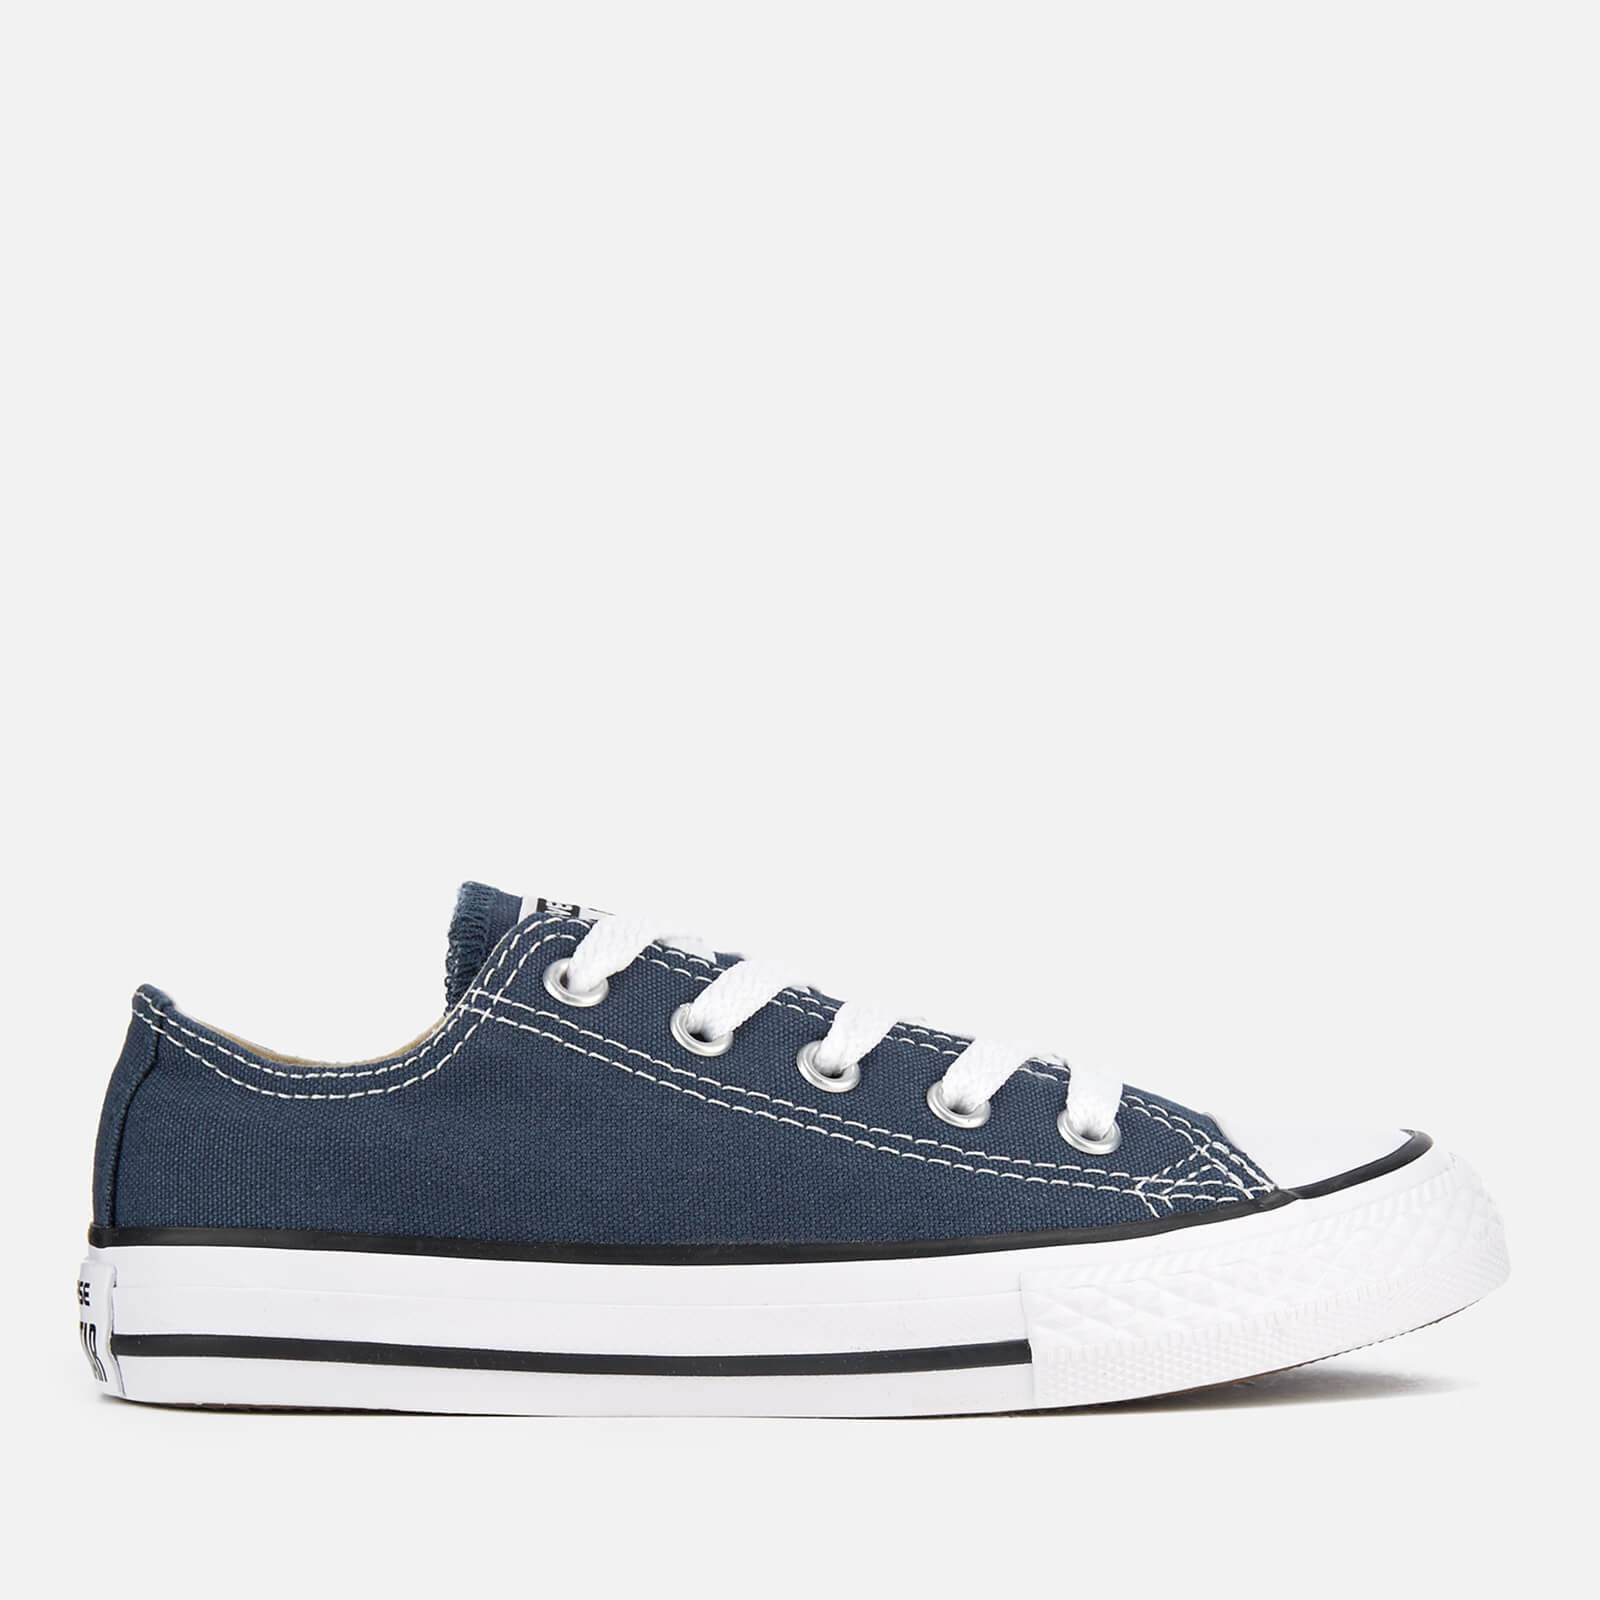 Converse Kids Chuck Taylor All Star Ox Trainers - Navy - UK 1 Kids